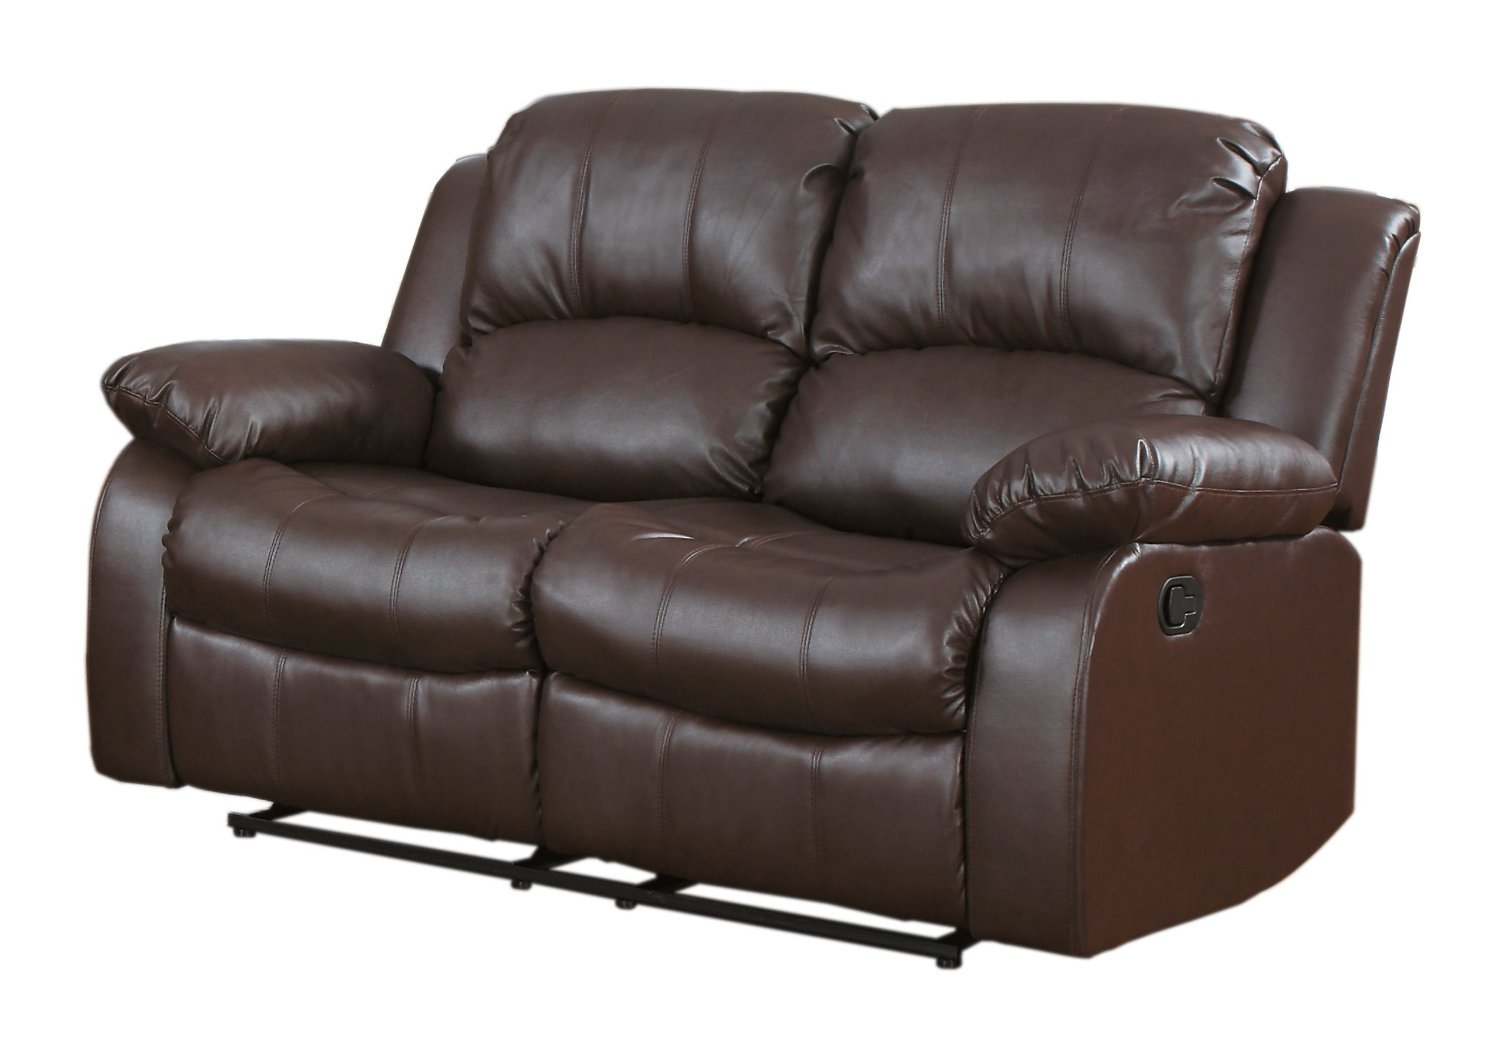 Finding the best power recliner loveseat in the marketplace best recliners Leather reclining sofa loveseat